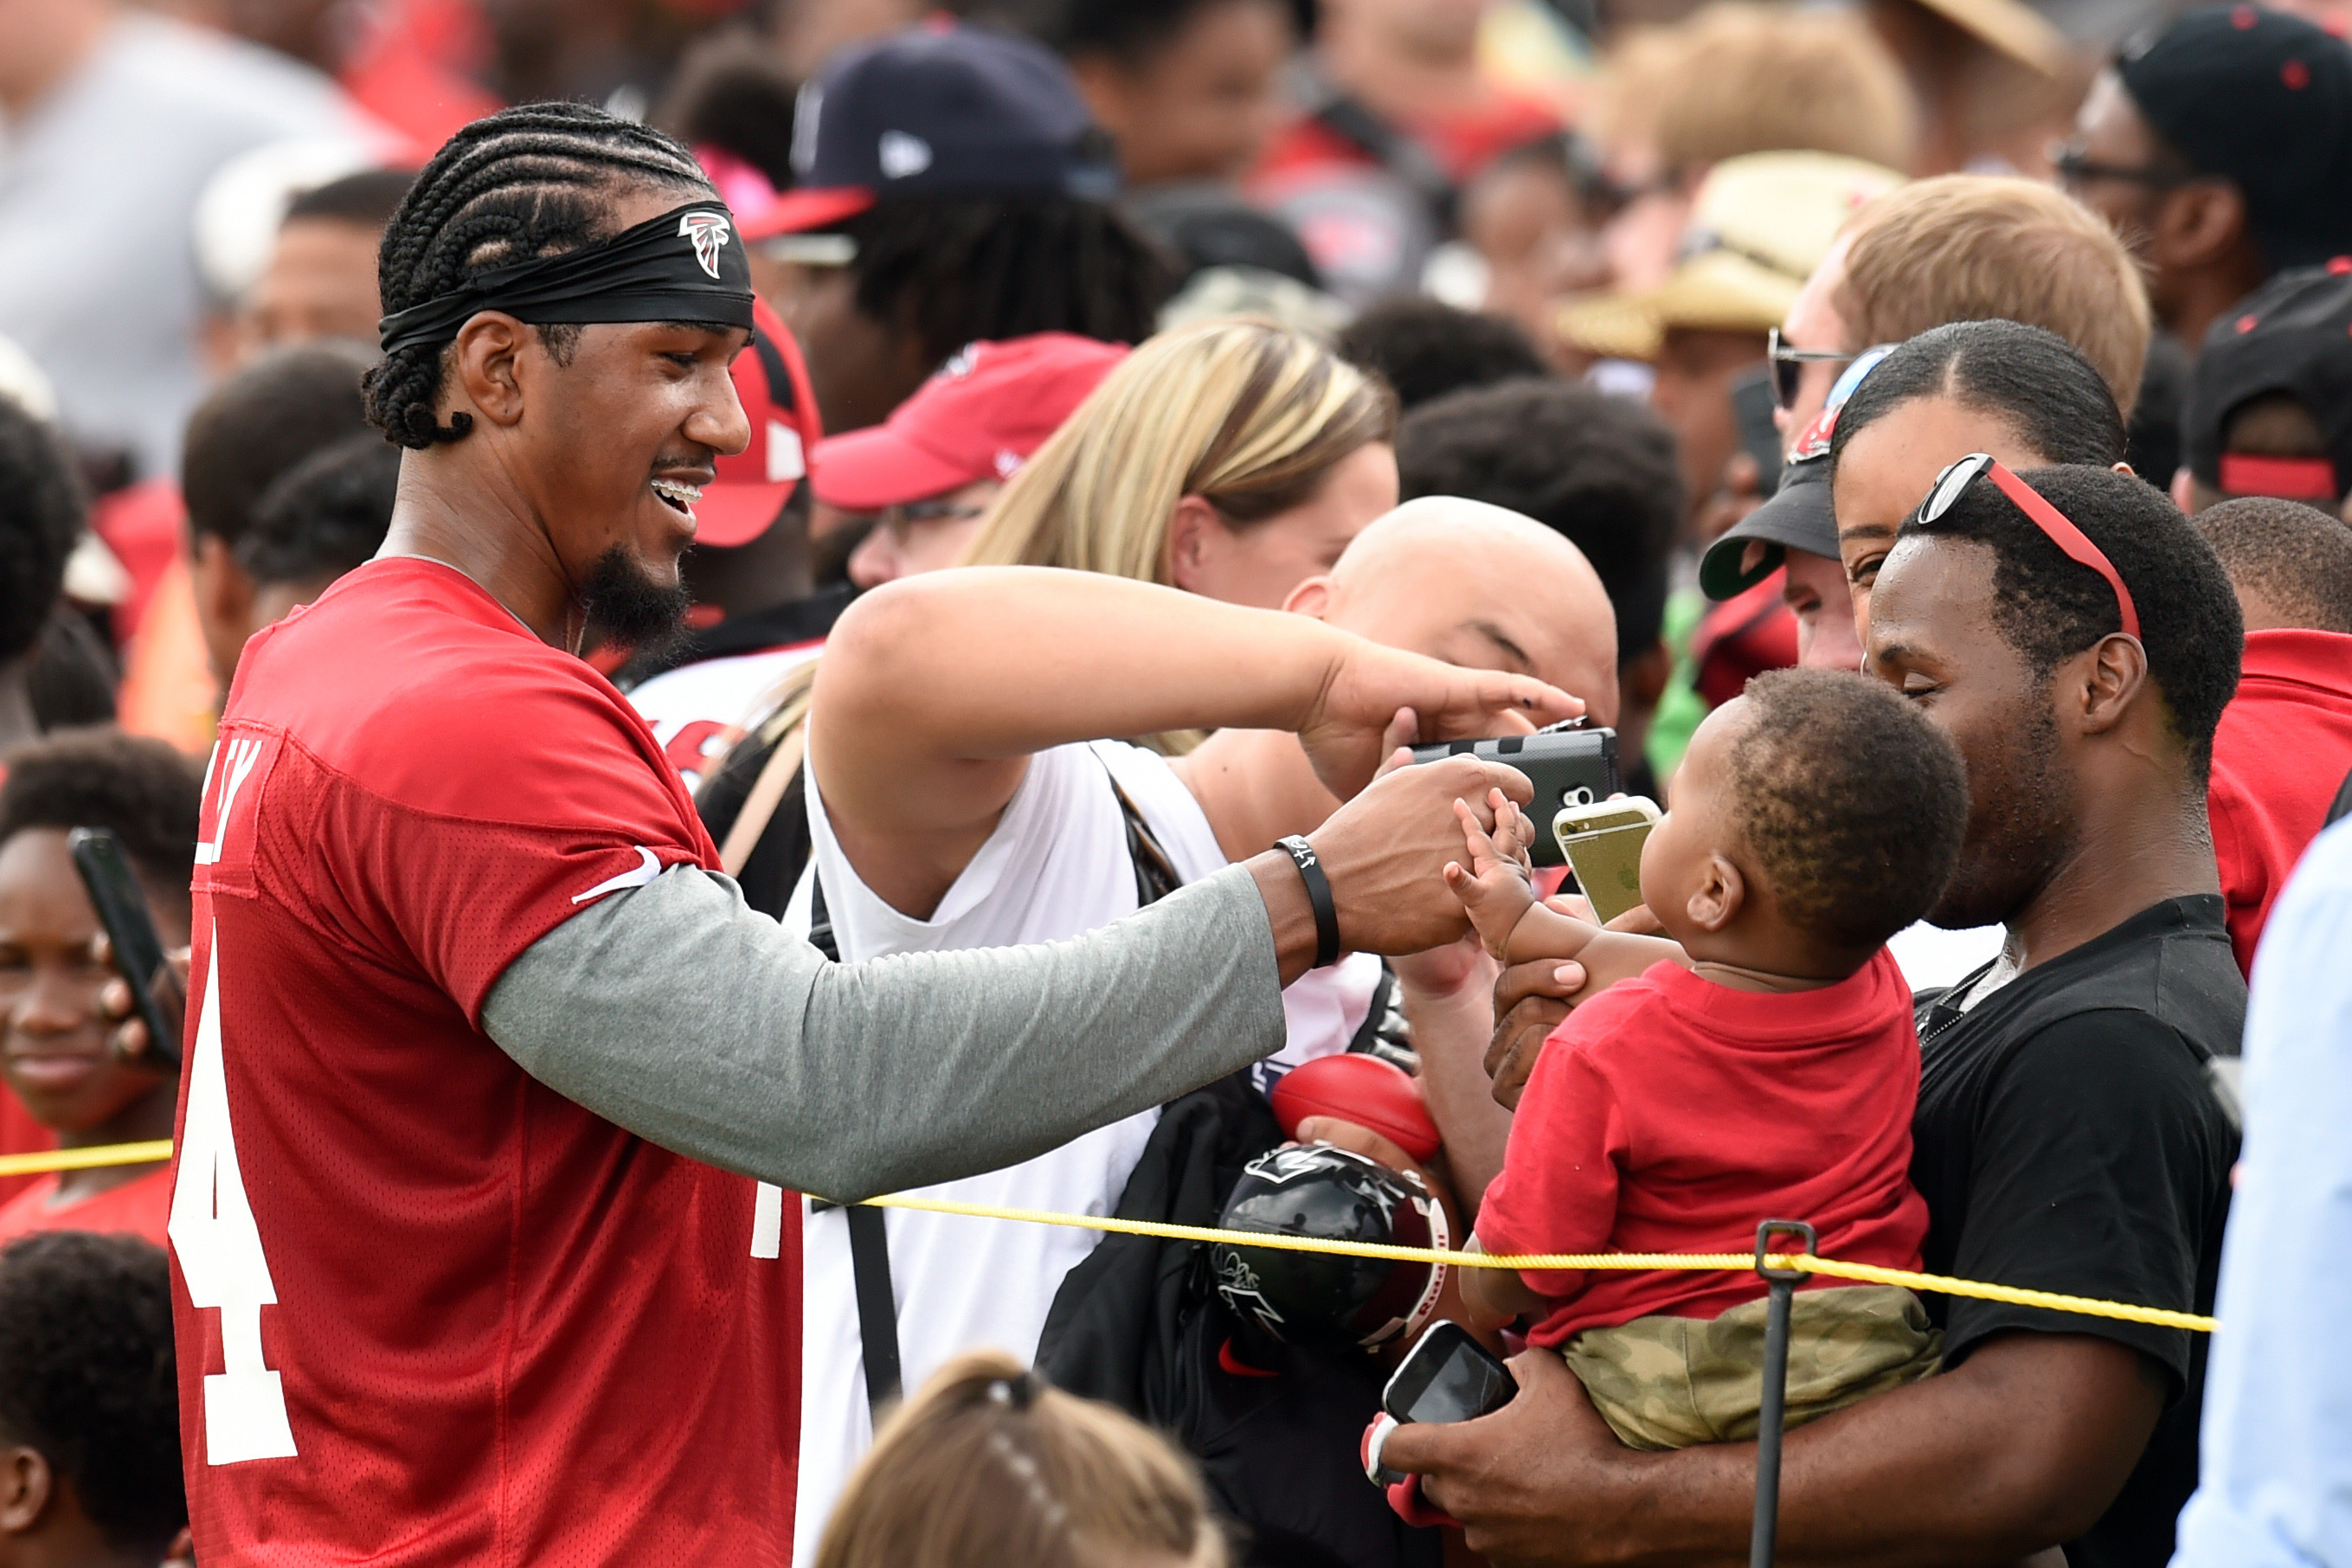 Aug 1, 2015; Atlanta, GA, USA; Atlanta Falcons defensive end Vic Beasley (44) fist bumps with a young fan while signing autographs after practice during training camp at the Flowery Branch Training Facility. Mandatory Credit: Dale Zanine-USA TODAY Sports